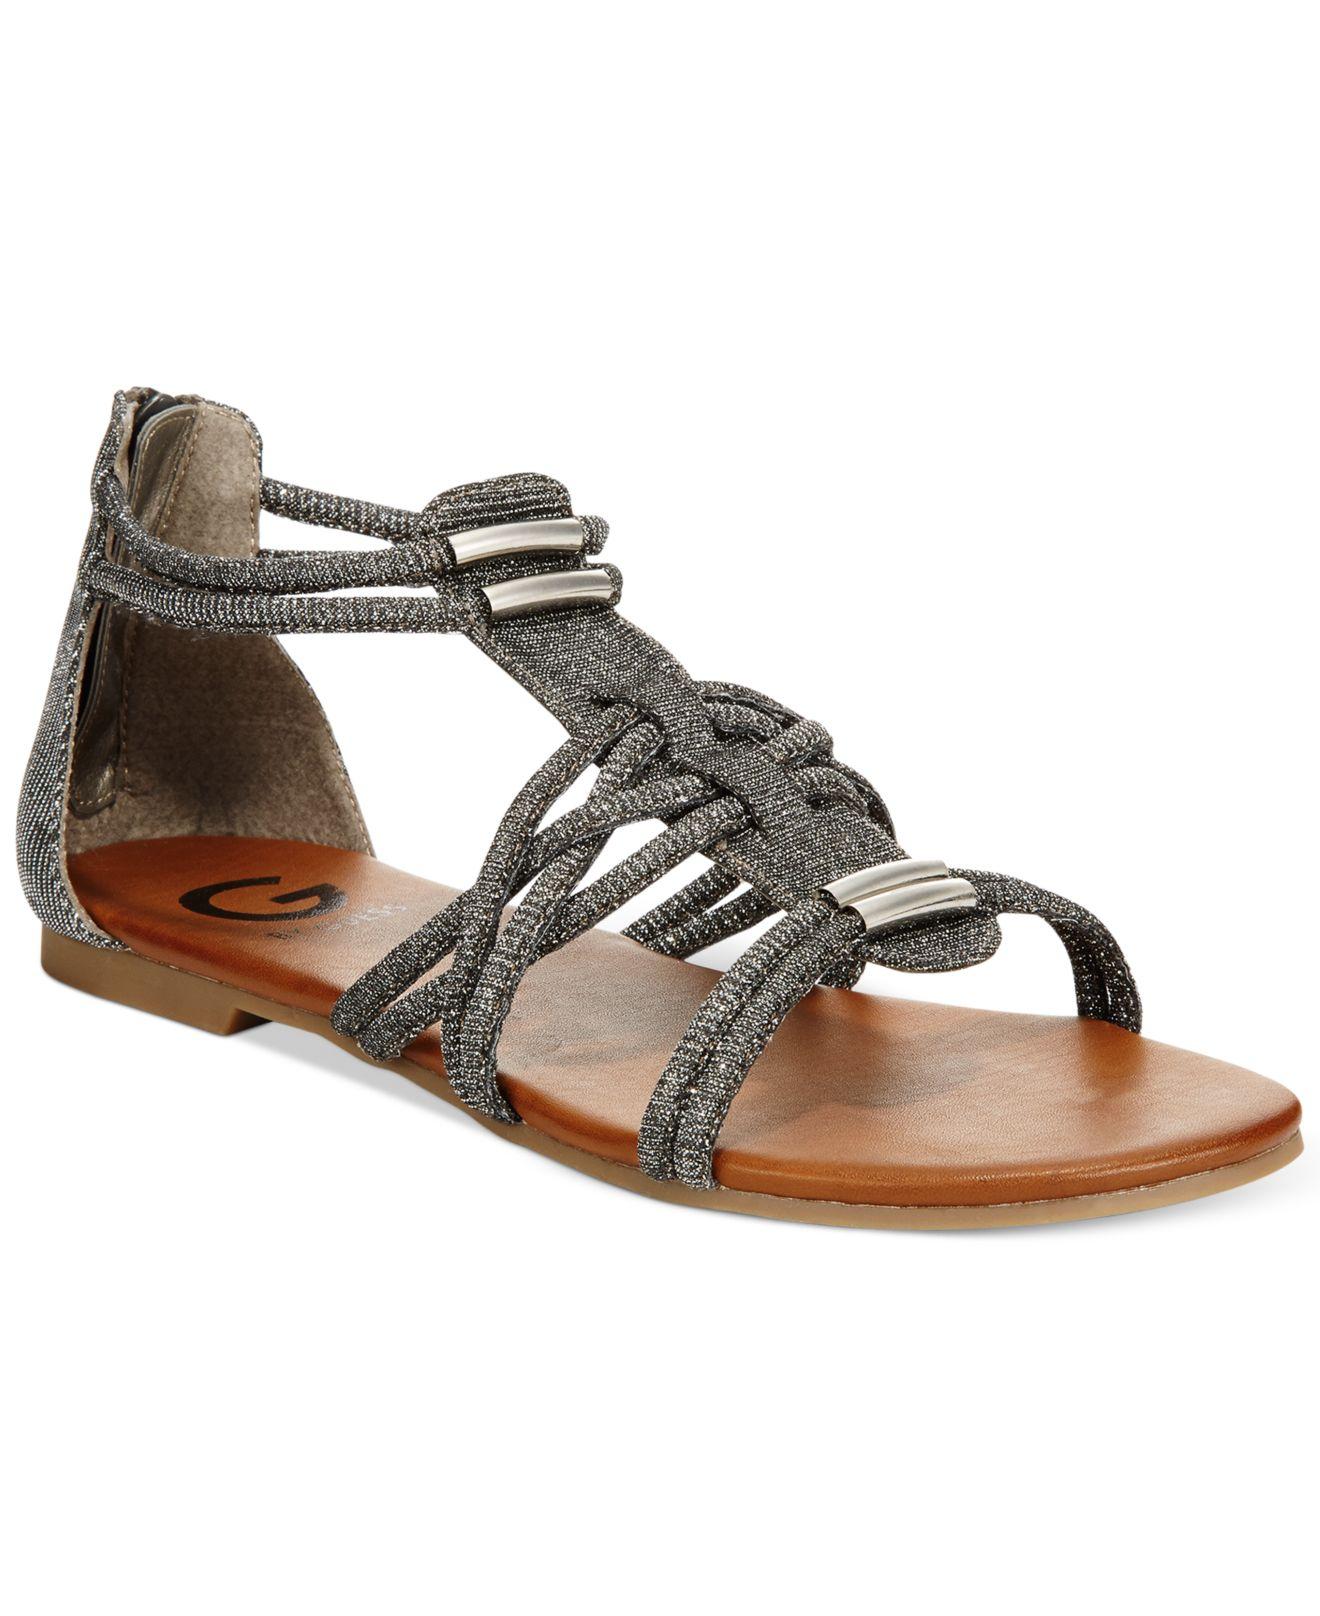 e79141084e7 Lyst - G by Guess Learn Flat Gladiator Sandals in Gray